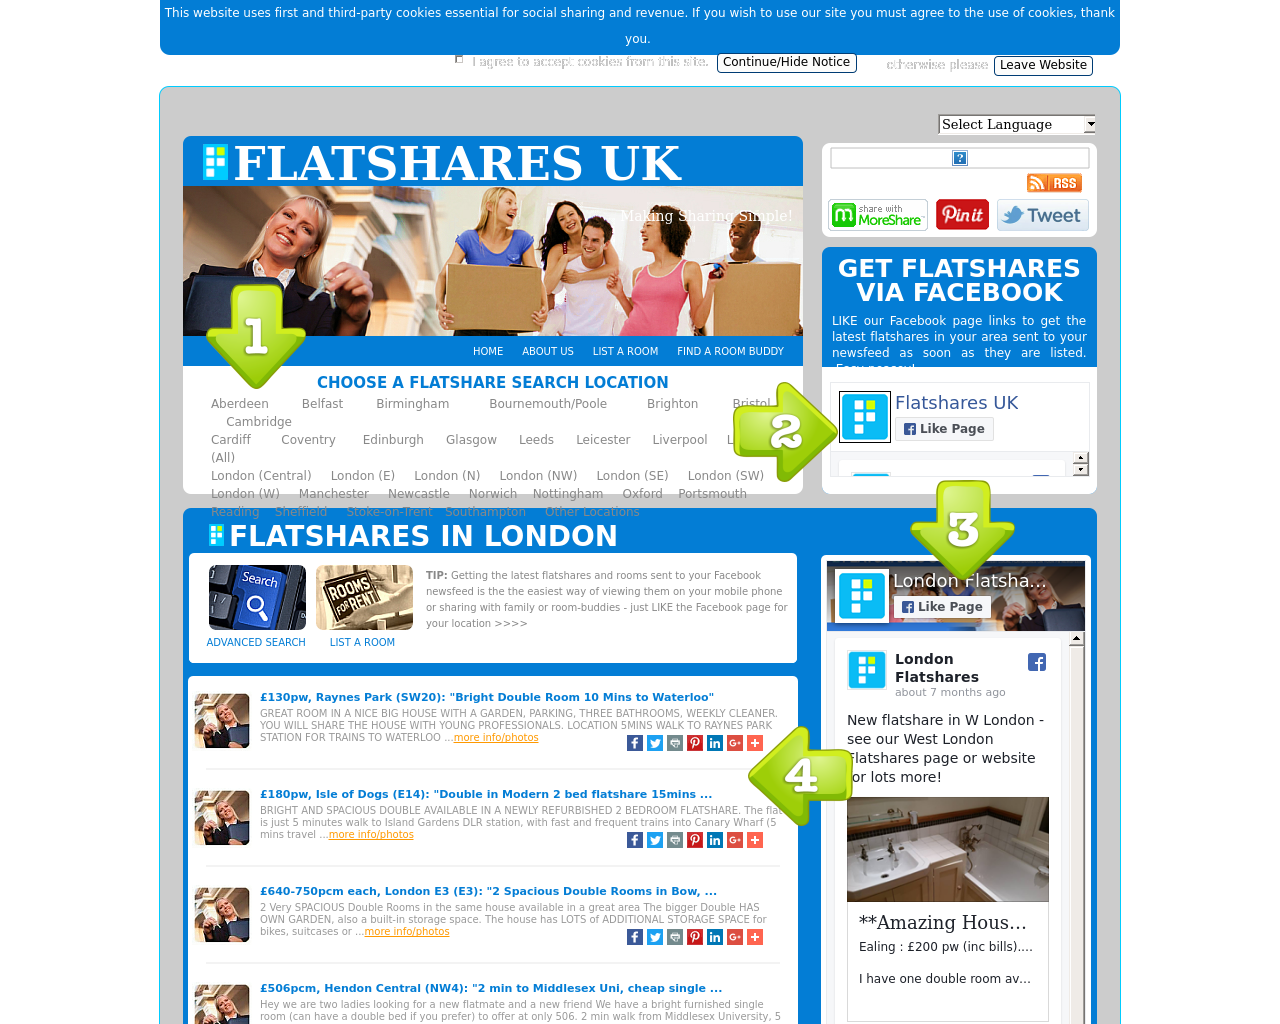 FLATSHARES-UK-Advertising-Reviews-Pricing